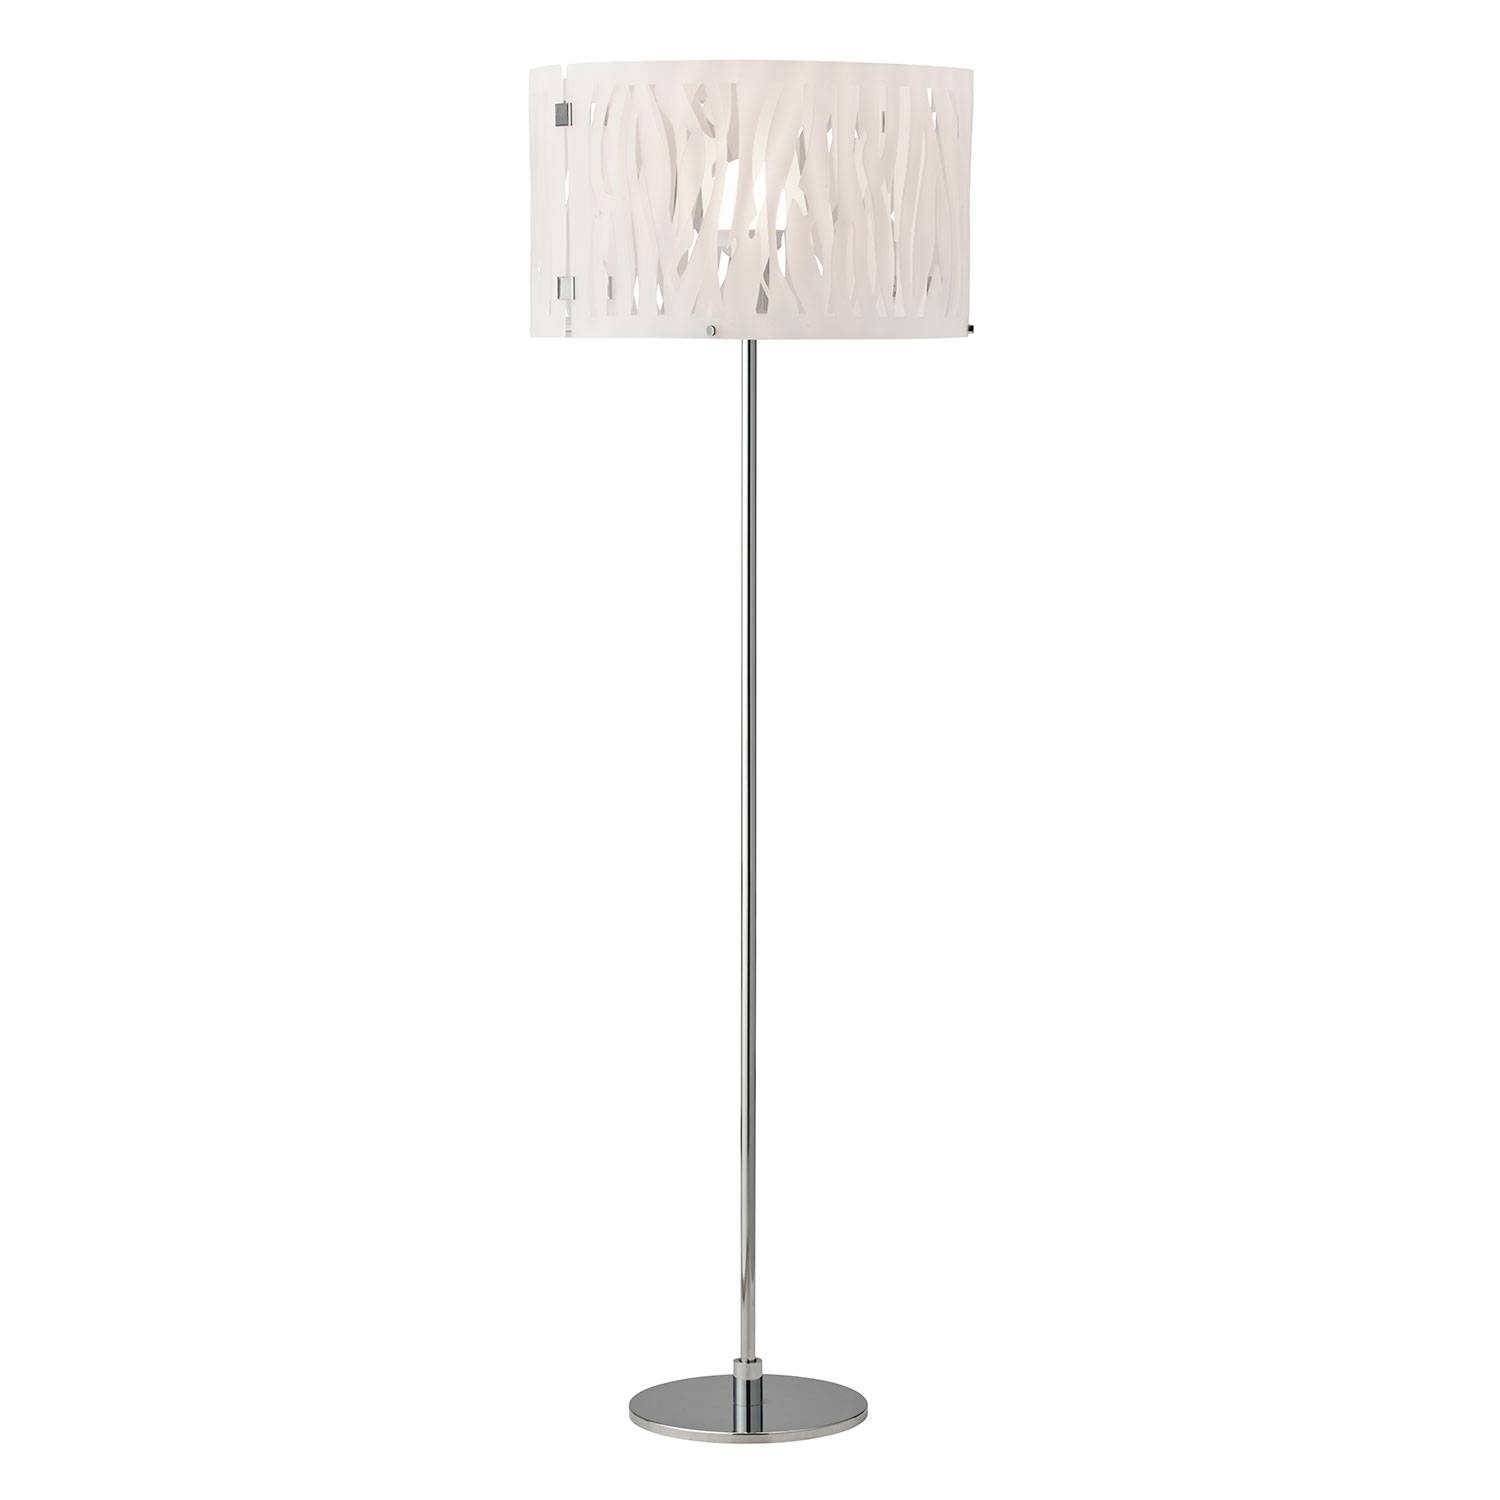 Herstal Grass Floor Lamp, Frosted White